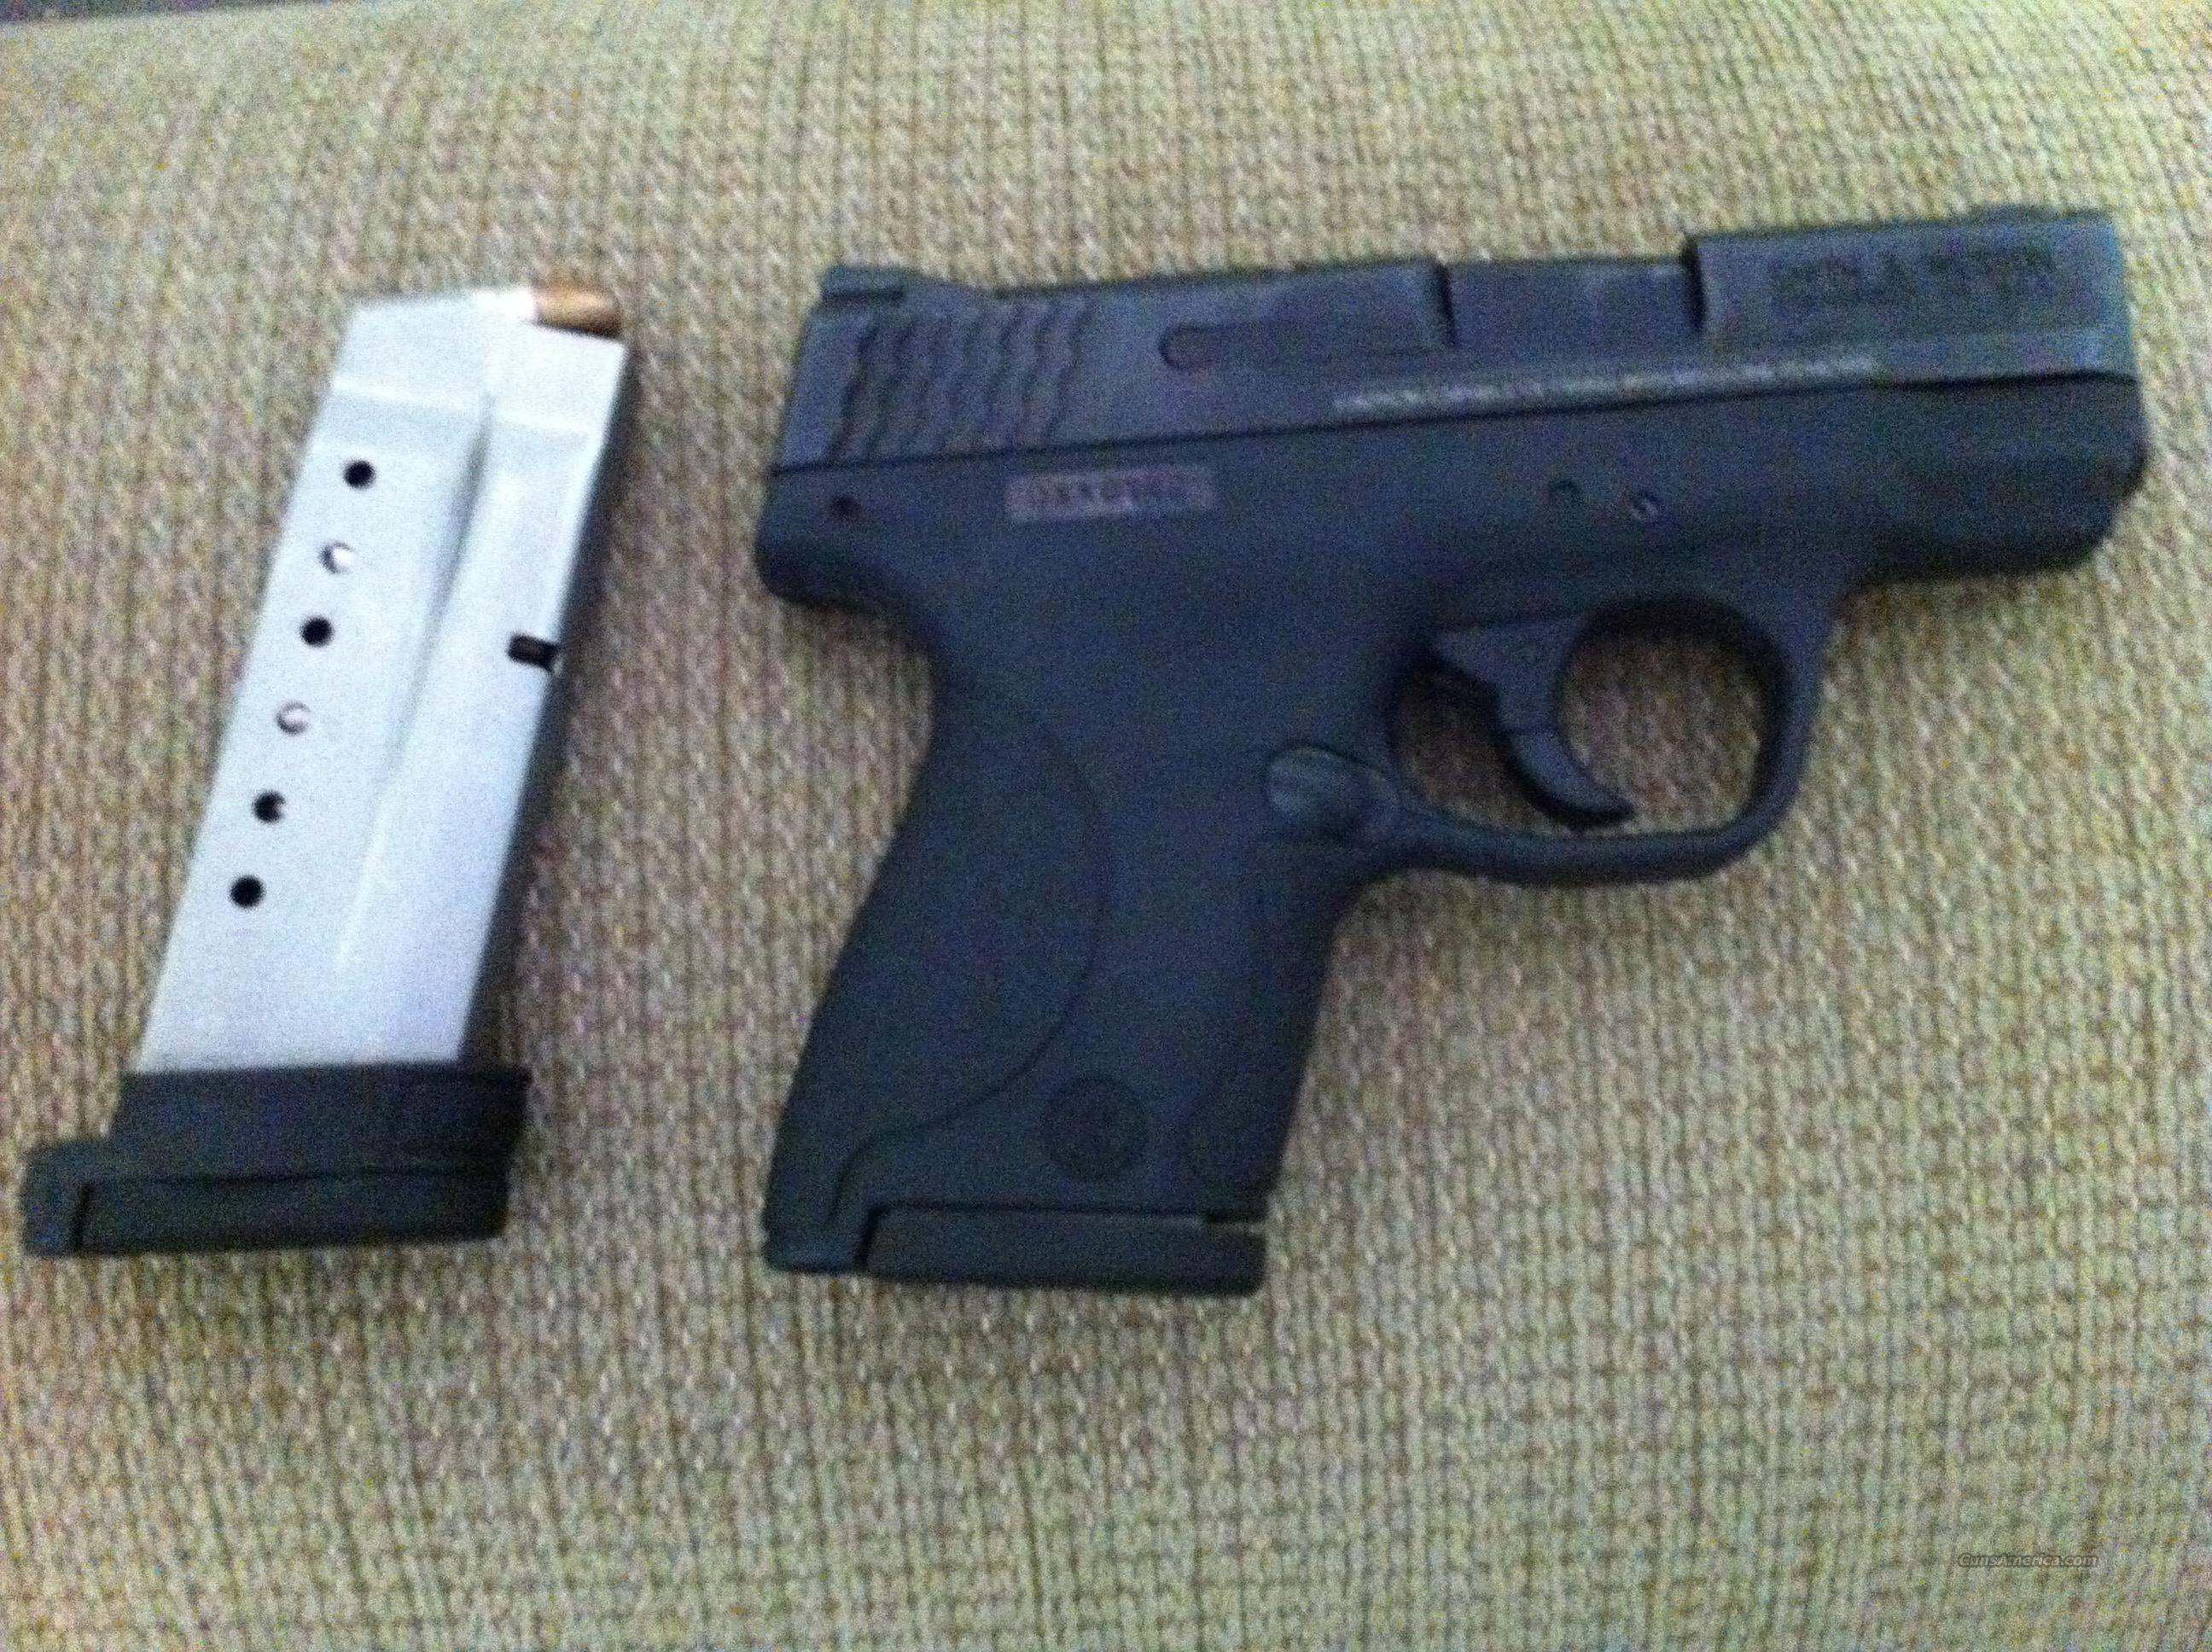 LIKE NEW 9MM SHIELD  Guns > Pistols > Smith & Wesson Pistols - Autos > Shield